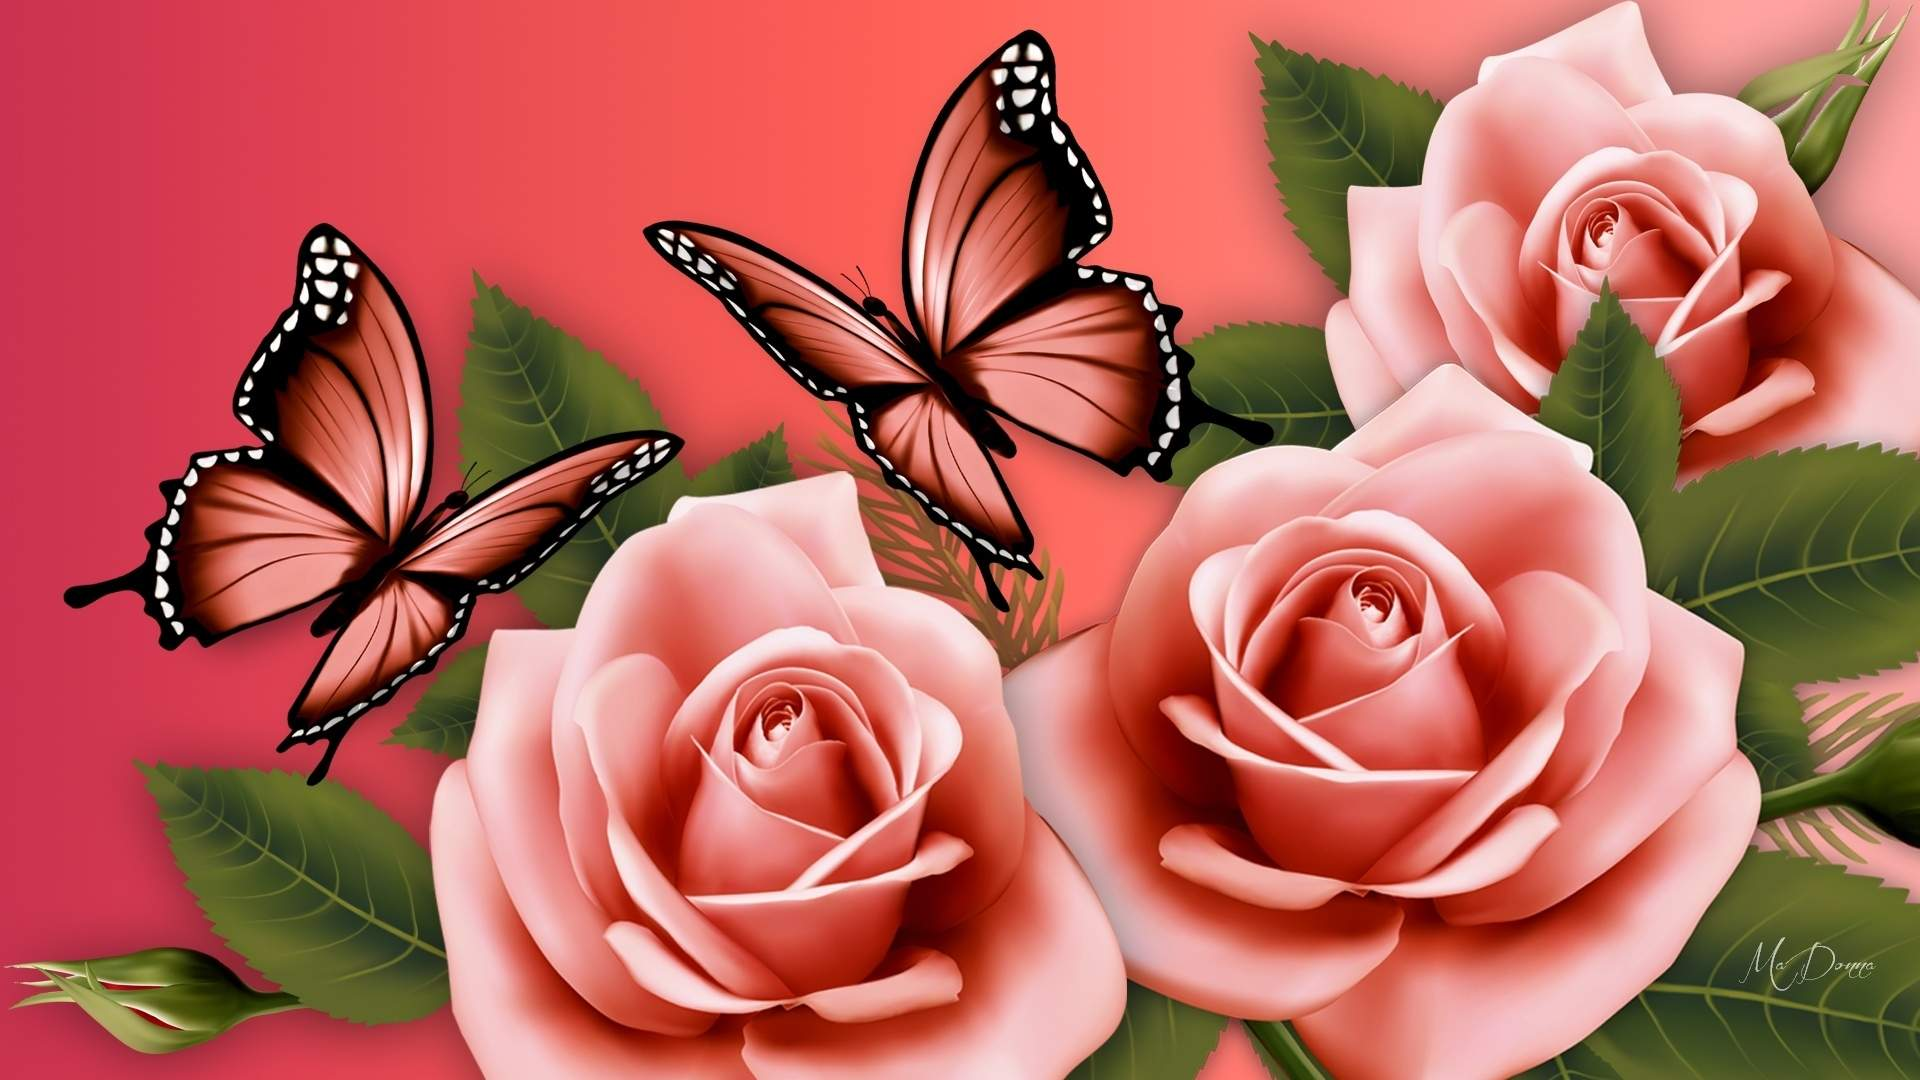 35 Flowers and Butterflies Wallpapers   Download at WallpaperBro 1920x1080